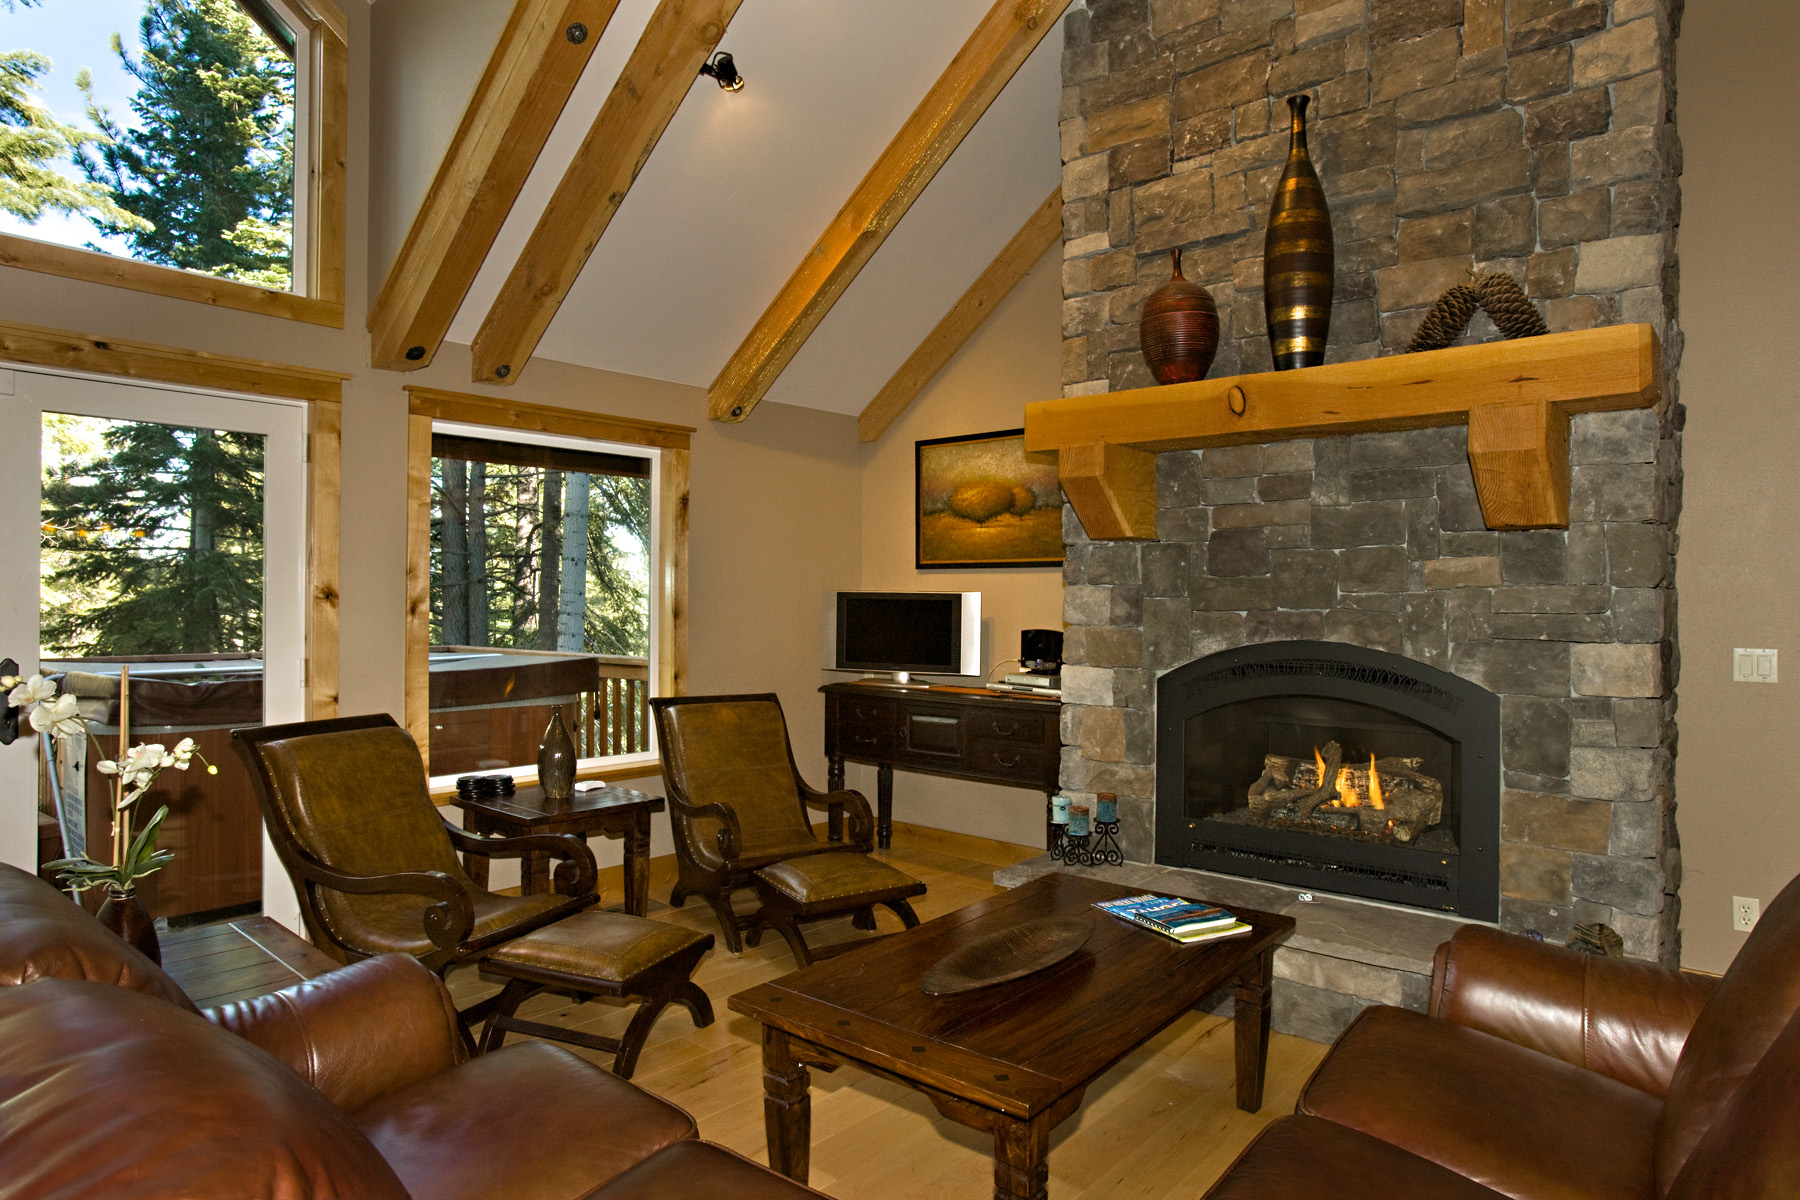 Plumas living room with gas fireplace